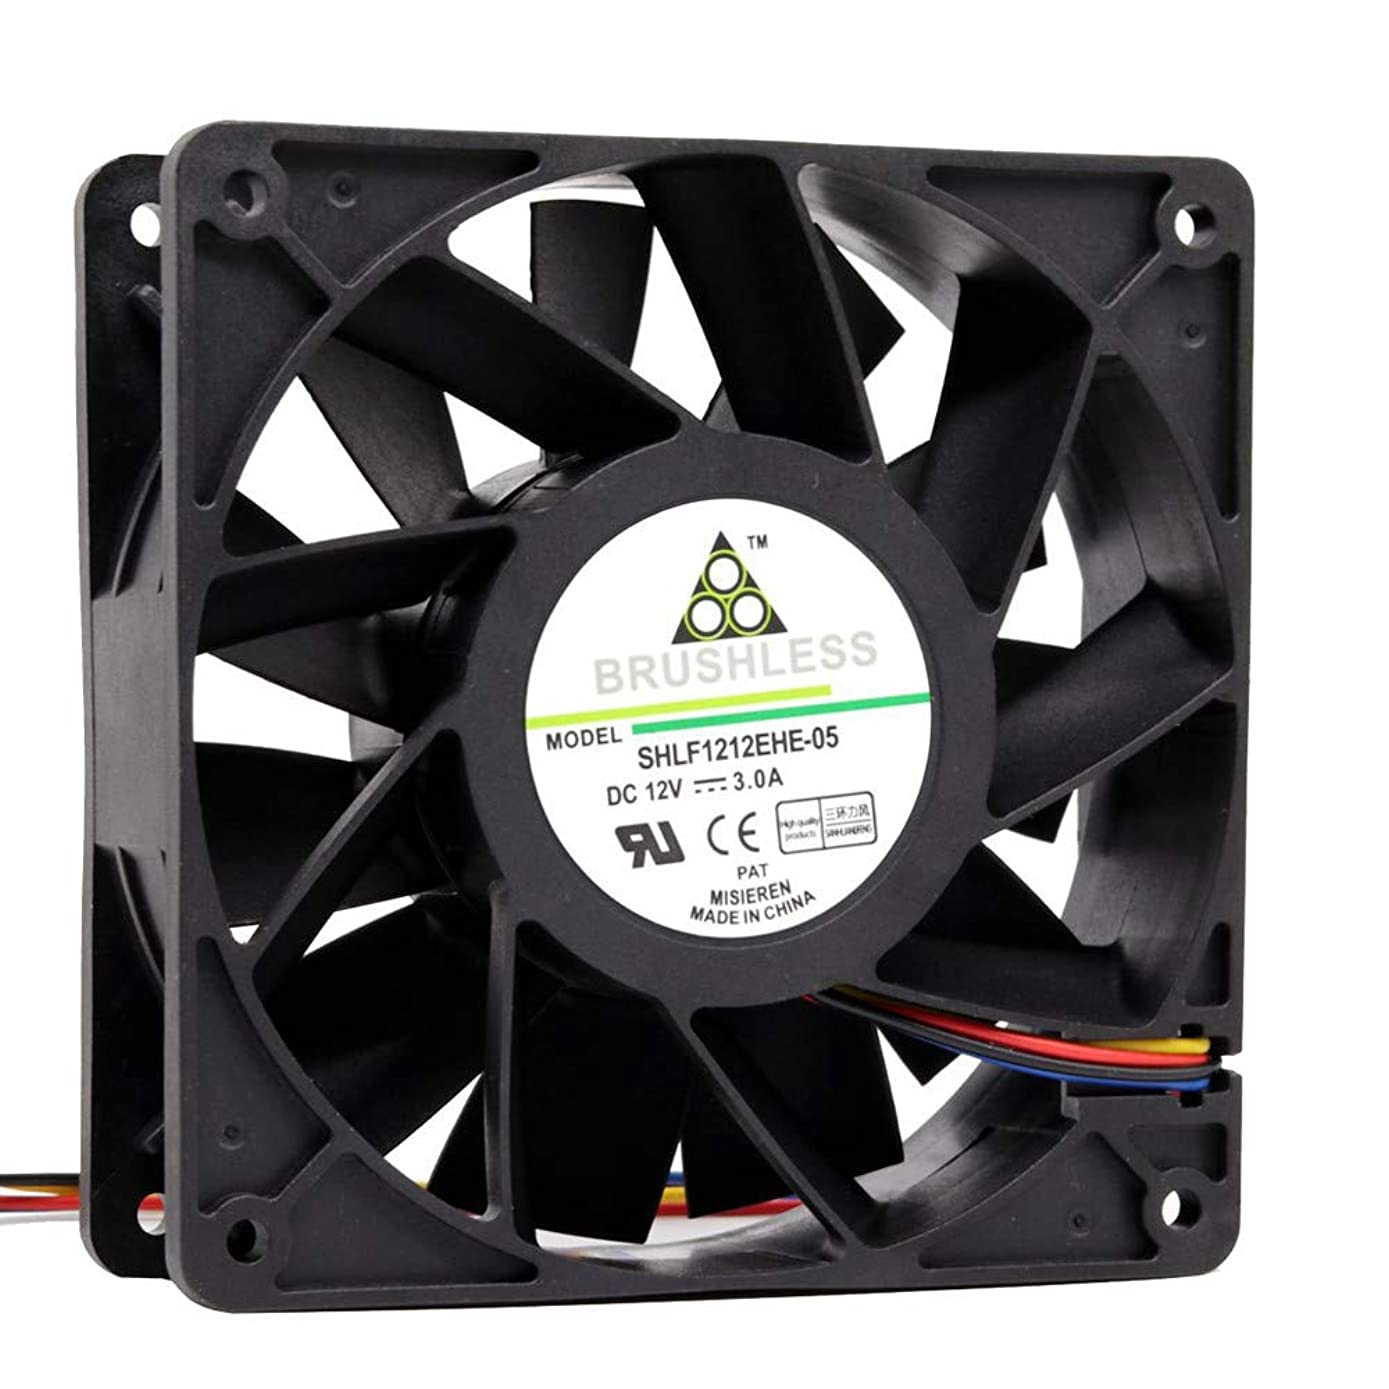 GOVOW-Tech 4500RPM Cooling Fan Replacement 4-pin Connector for Antminer Bitmain S7